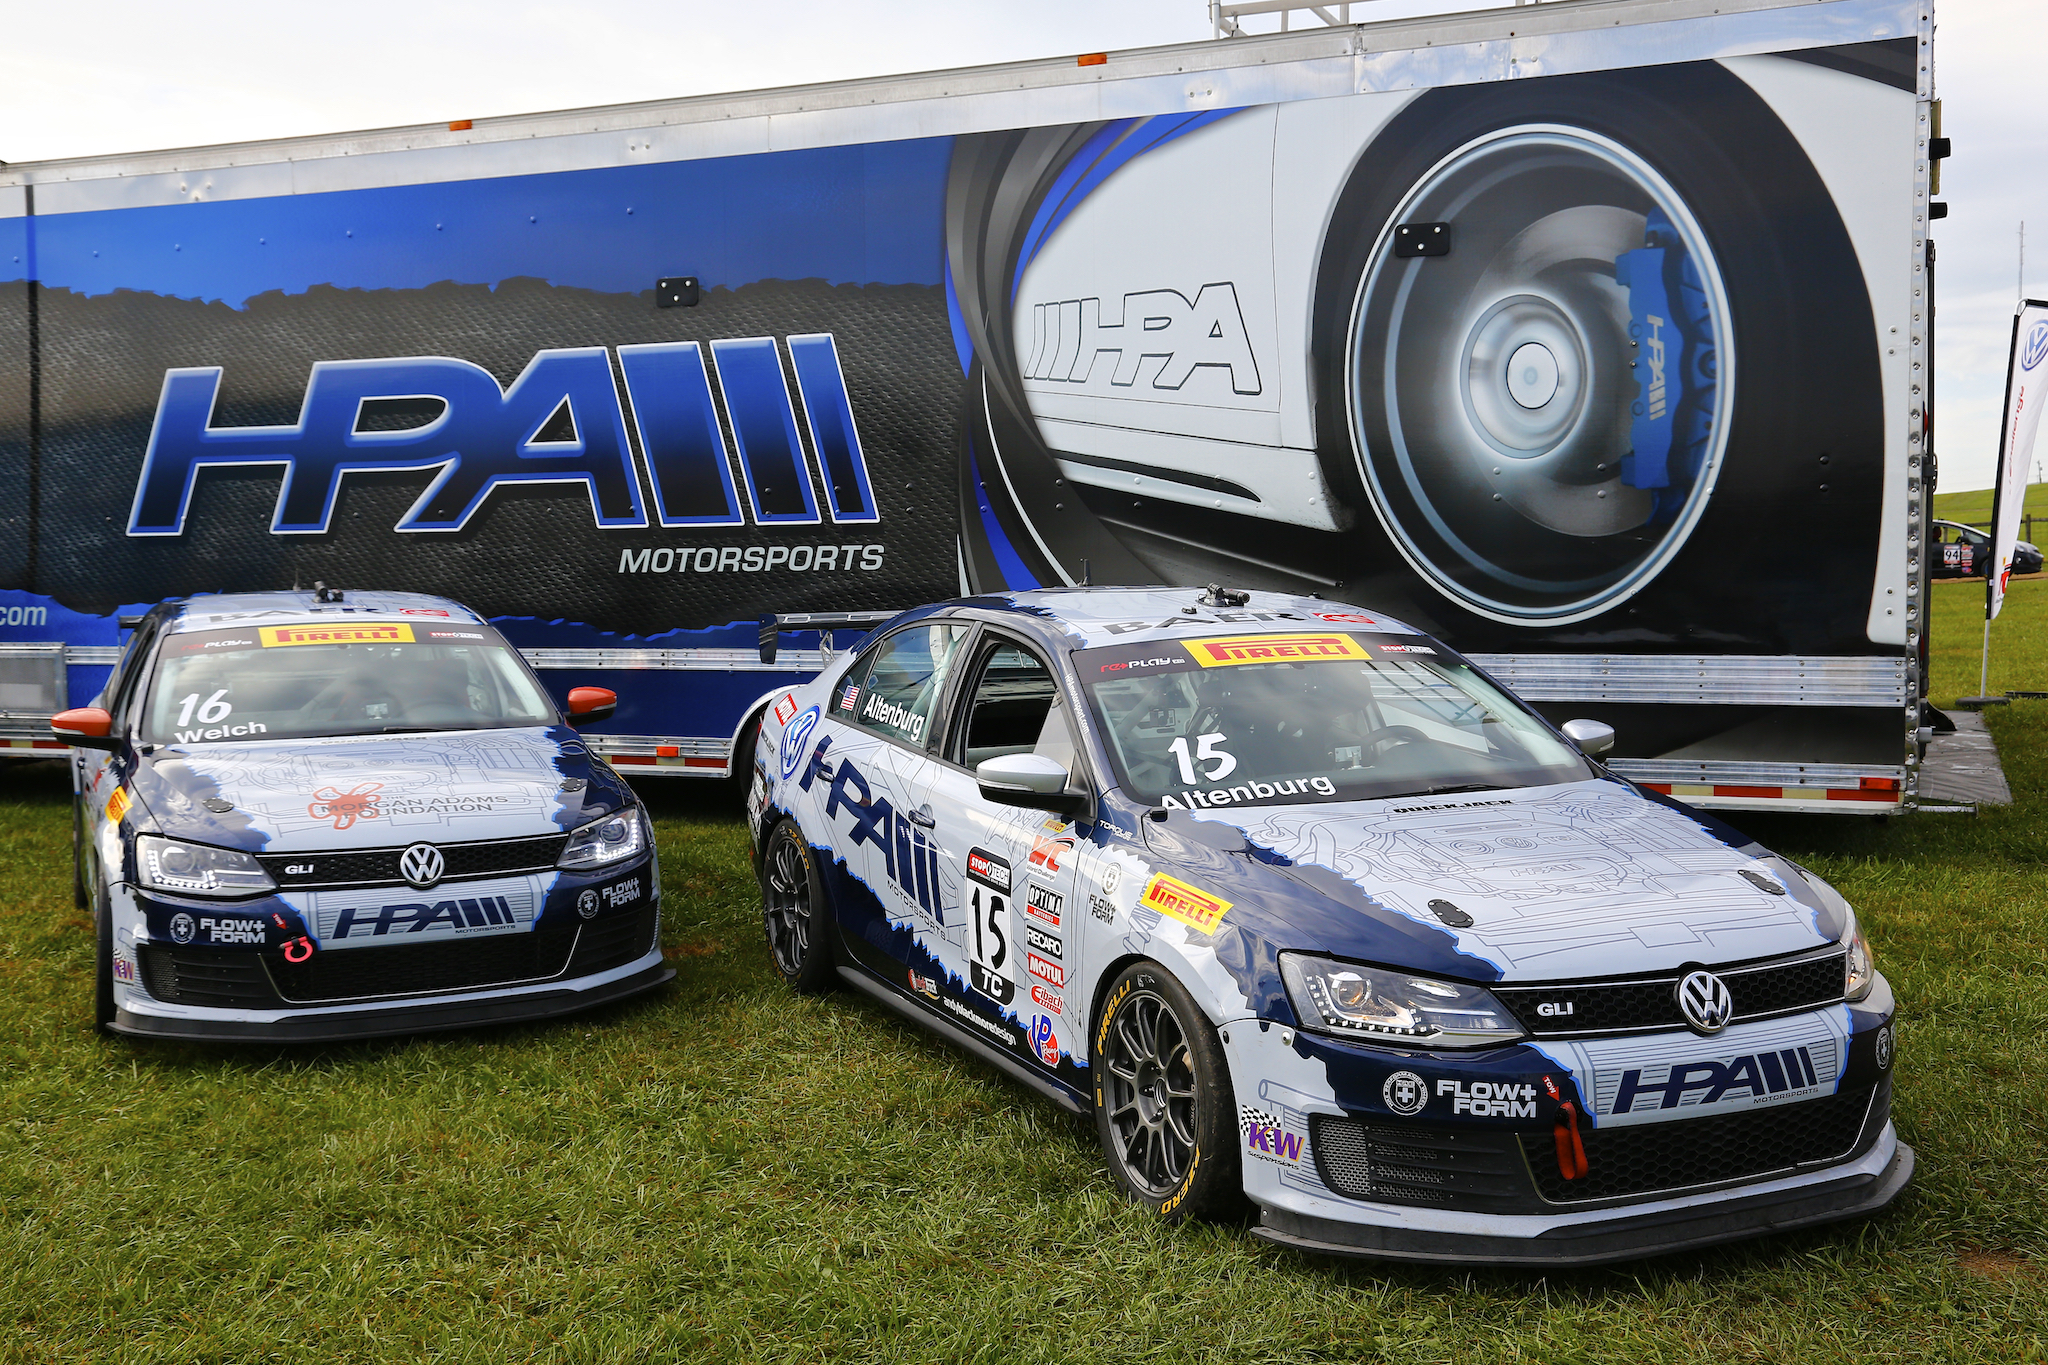 how to get into touring car racing